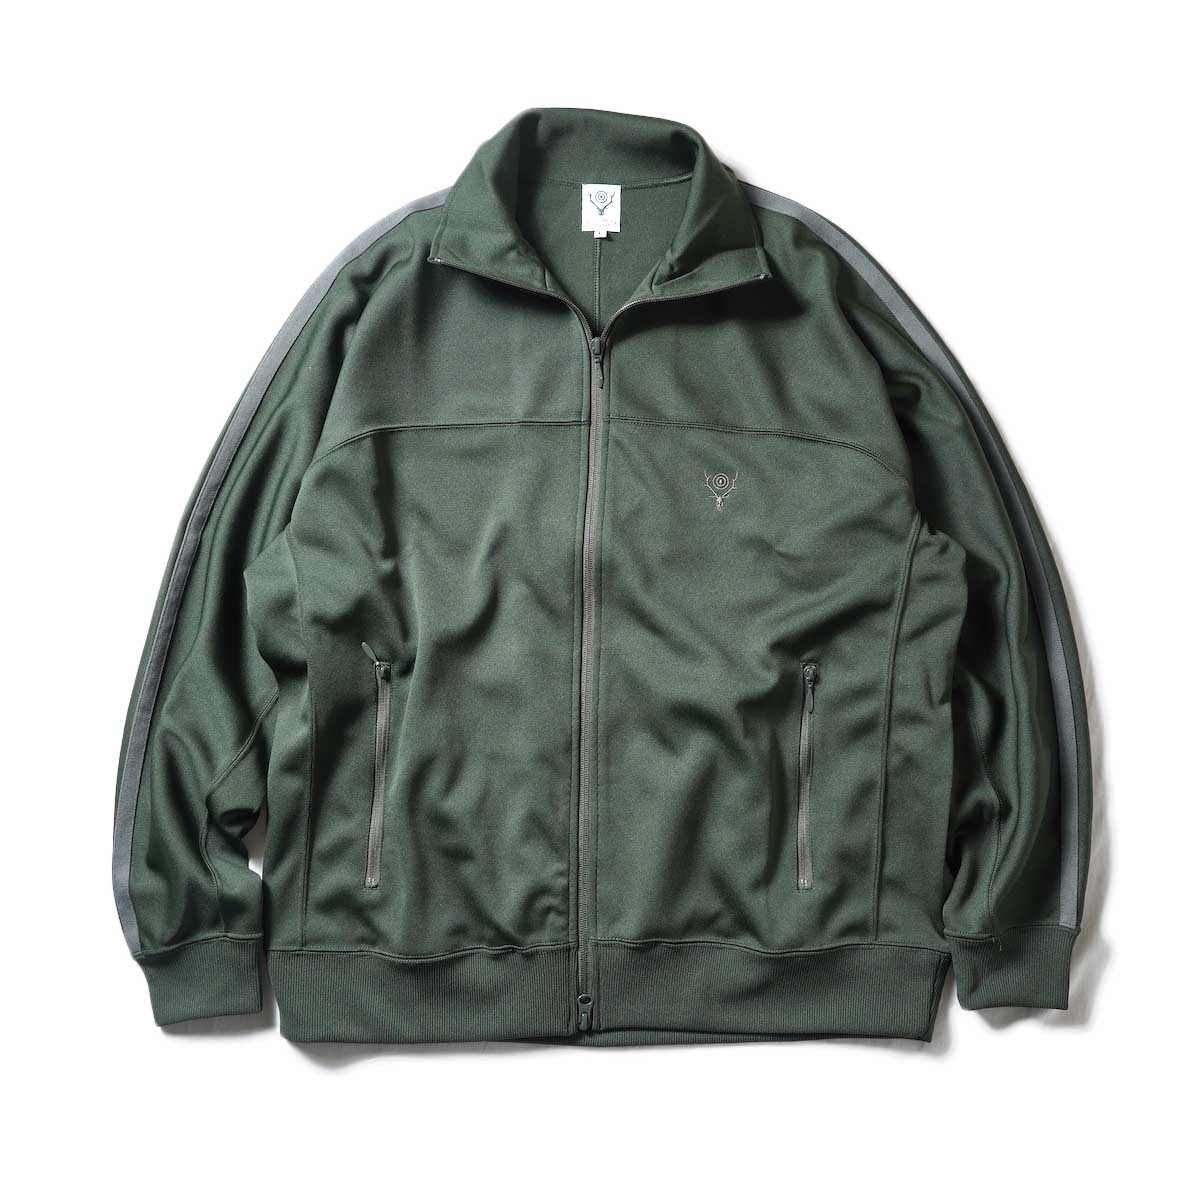 South2 West8 / Trainer jacket - Poly Smooth (Green)